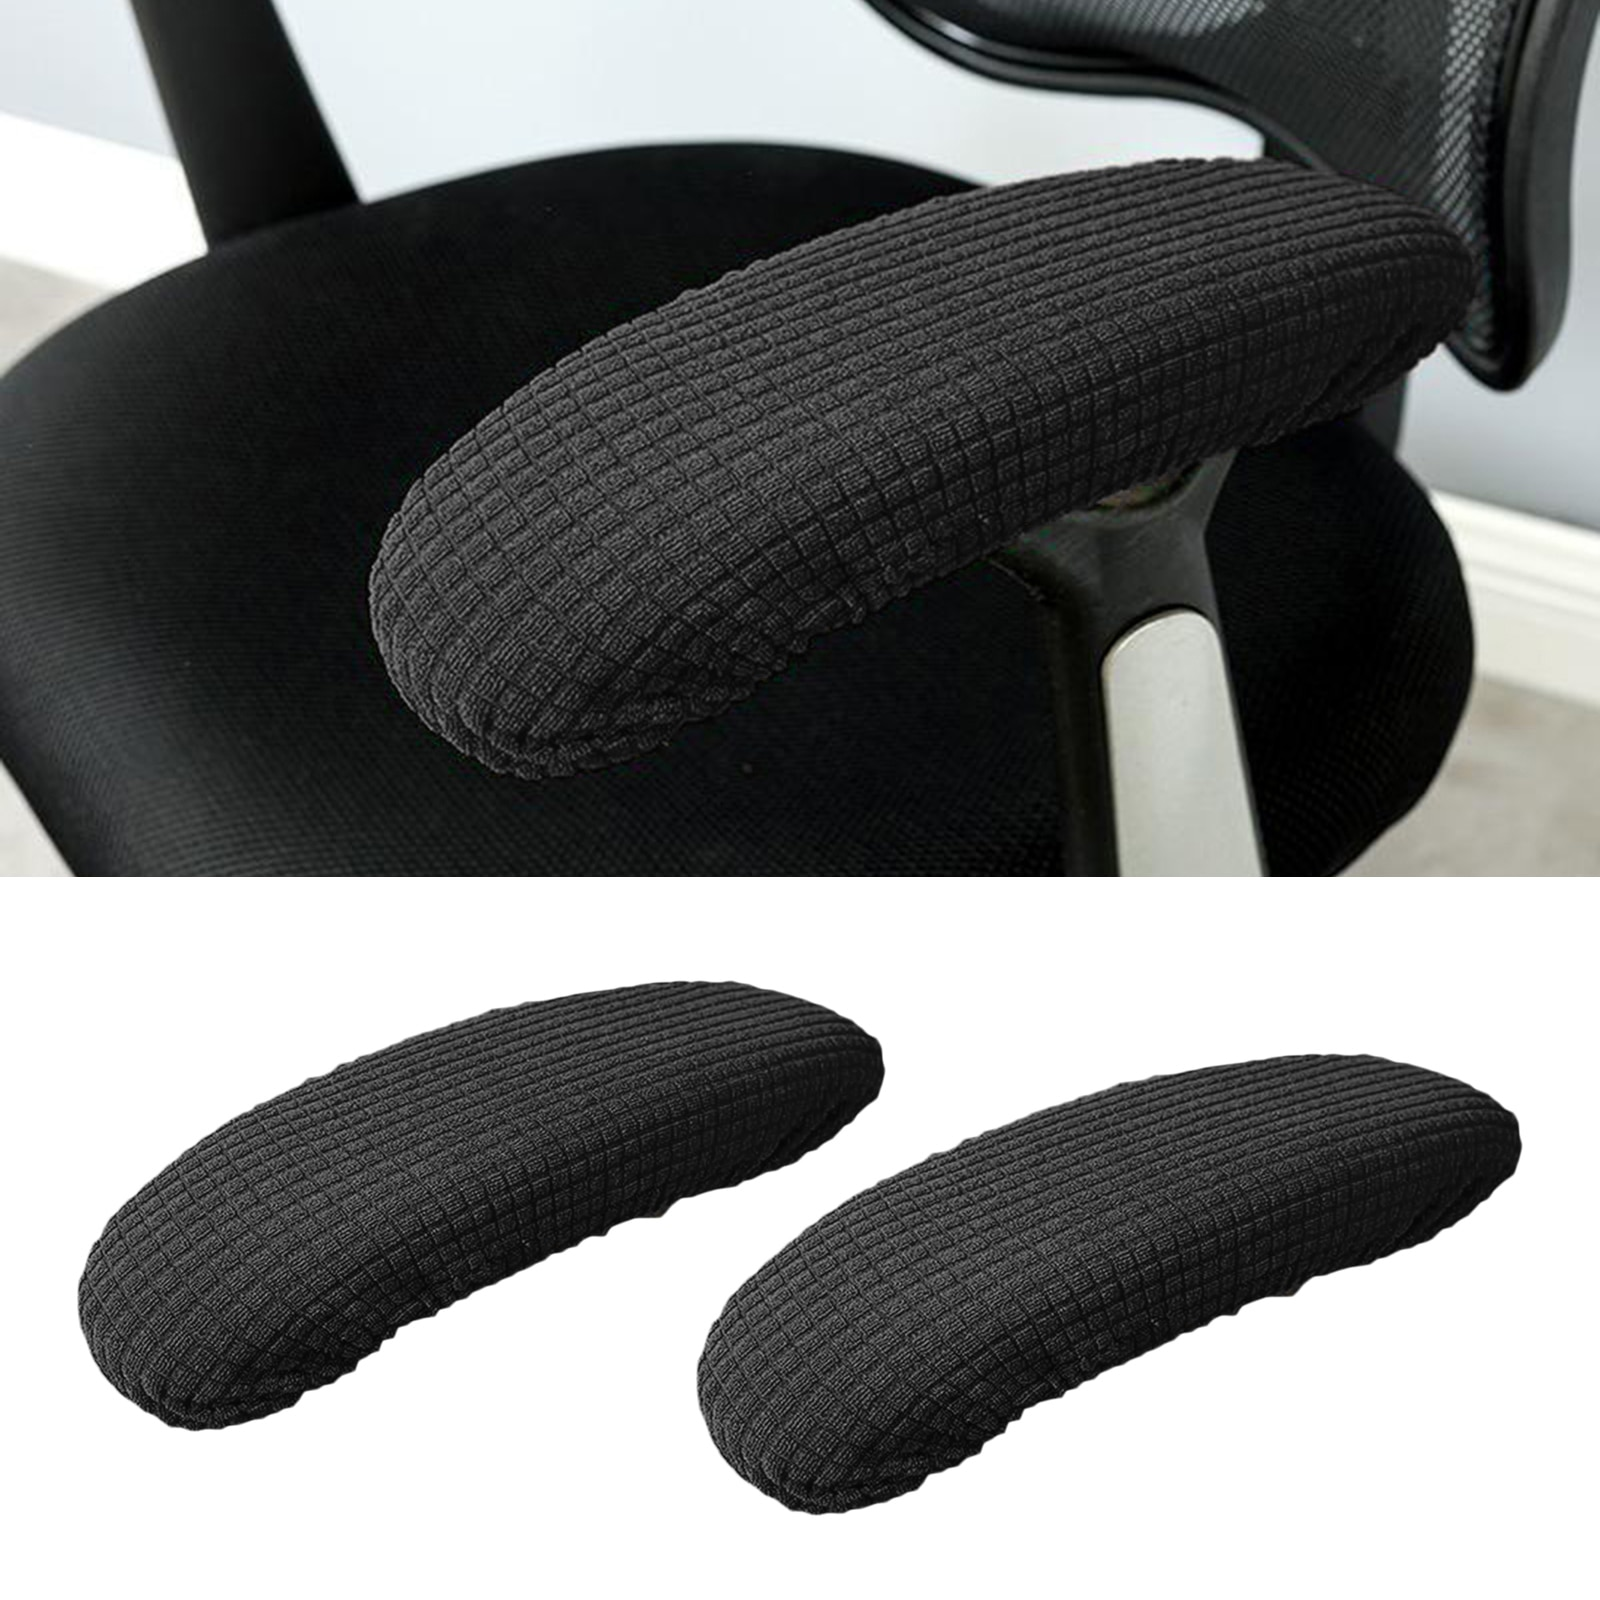 1 Pair Stretch Chair Armrest Covers for Office Home Desk Gaming Chair 25-33cm Long Armrest Cover